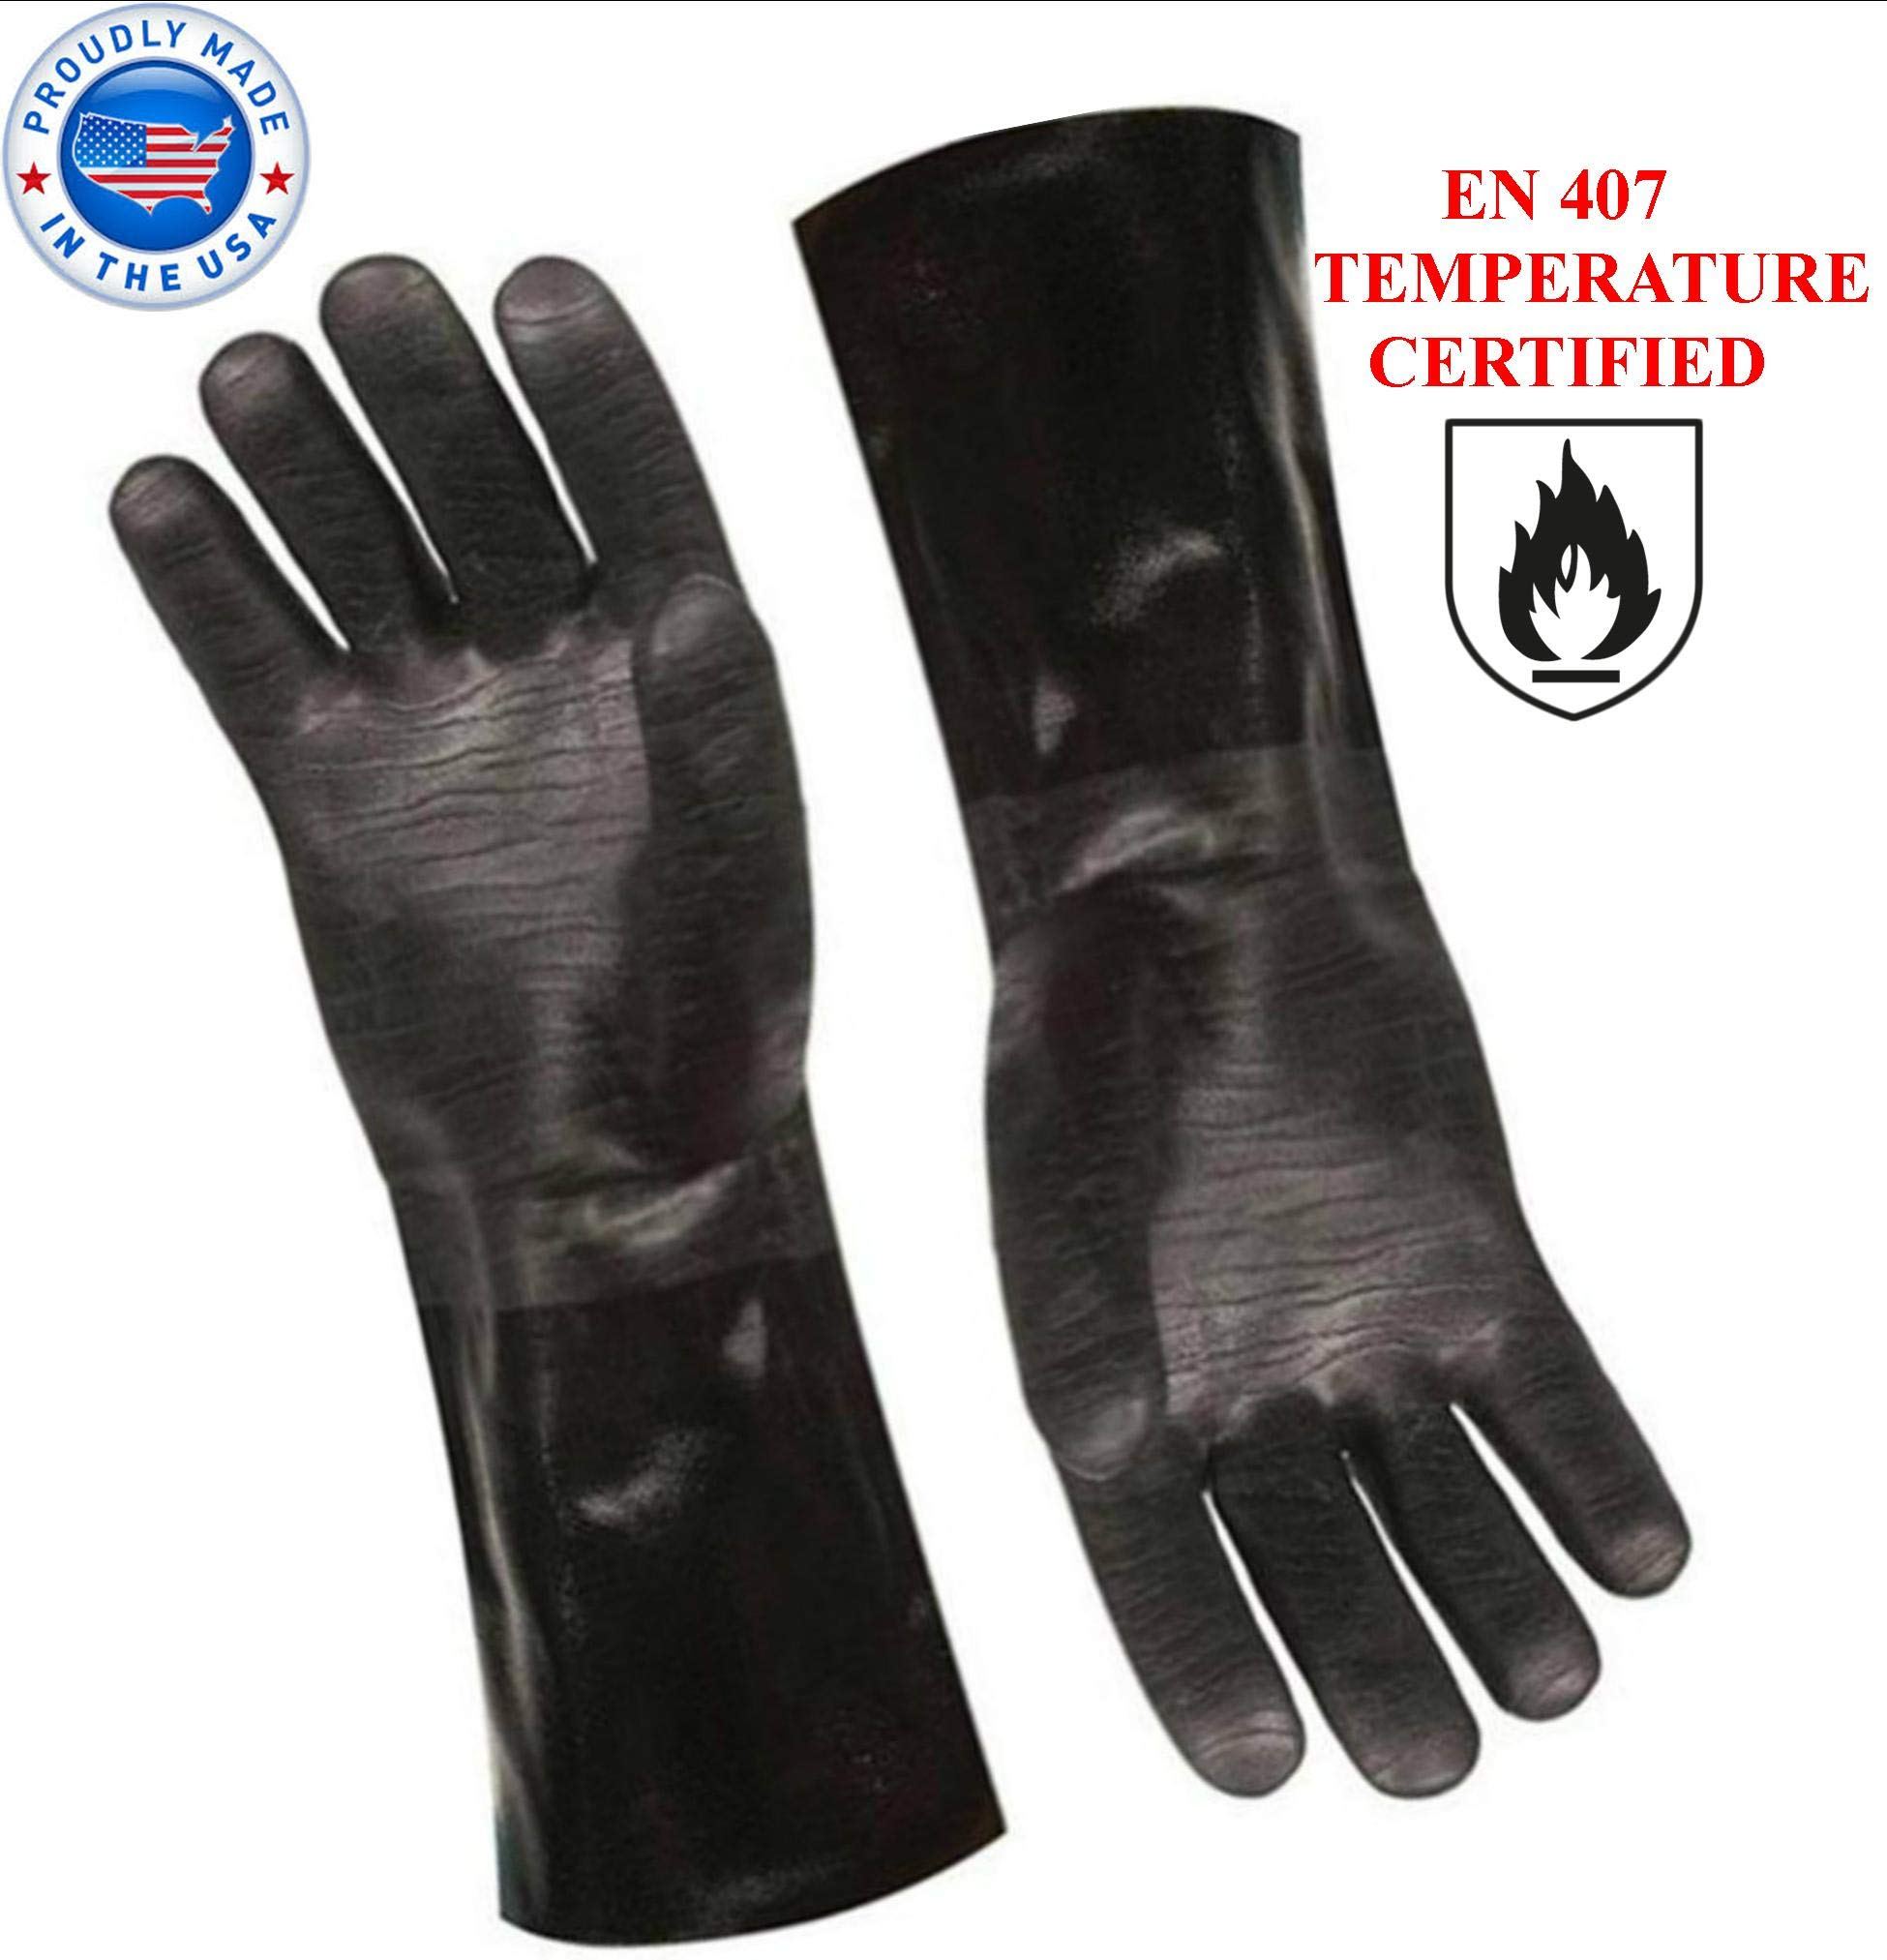 Artisan Griller BBQ Heat Resistant Insulated Smoker, Grill, Fryer, Oven, Brewing, Cooking Gloves. Great for Barbecue/Frying/Grilling - Waterproof, Fire&Oil Resistant Neoprene-1 Pair Size 10/XL-14 by ARTISAN GRILLER REDEFINING OUTDOOR COOKING